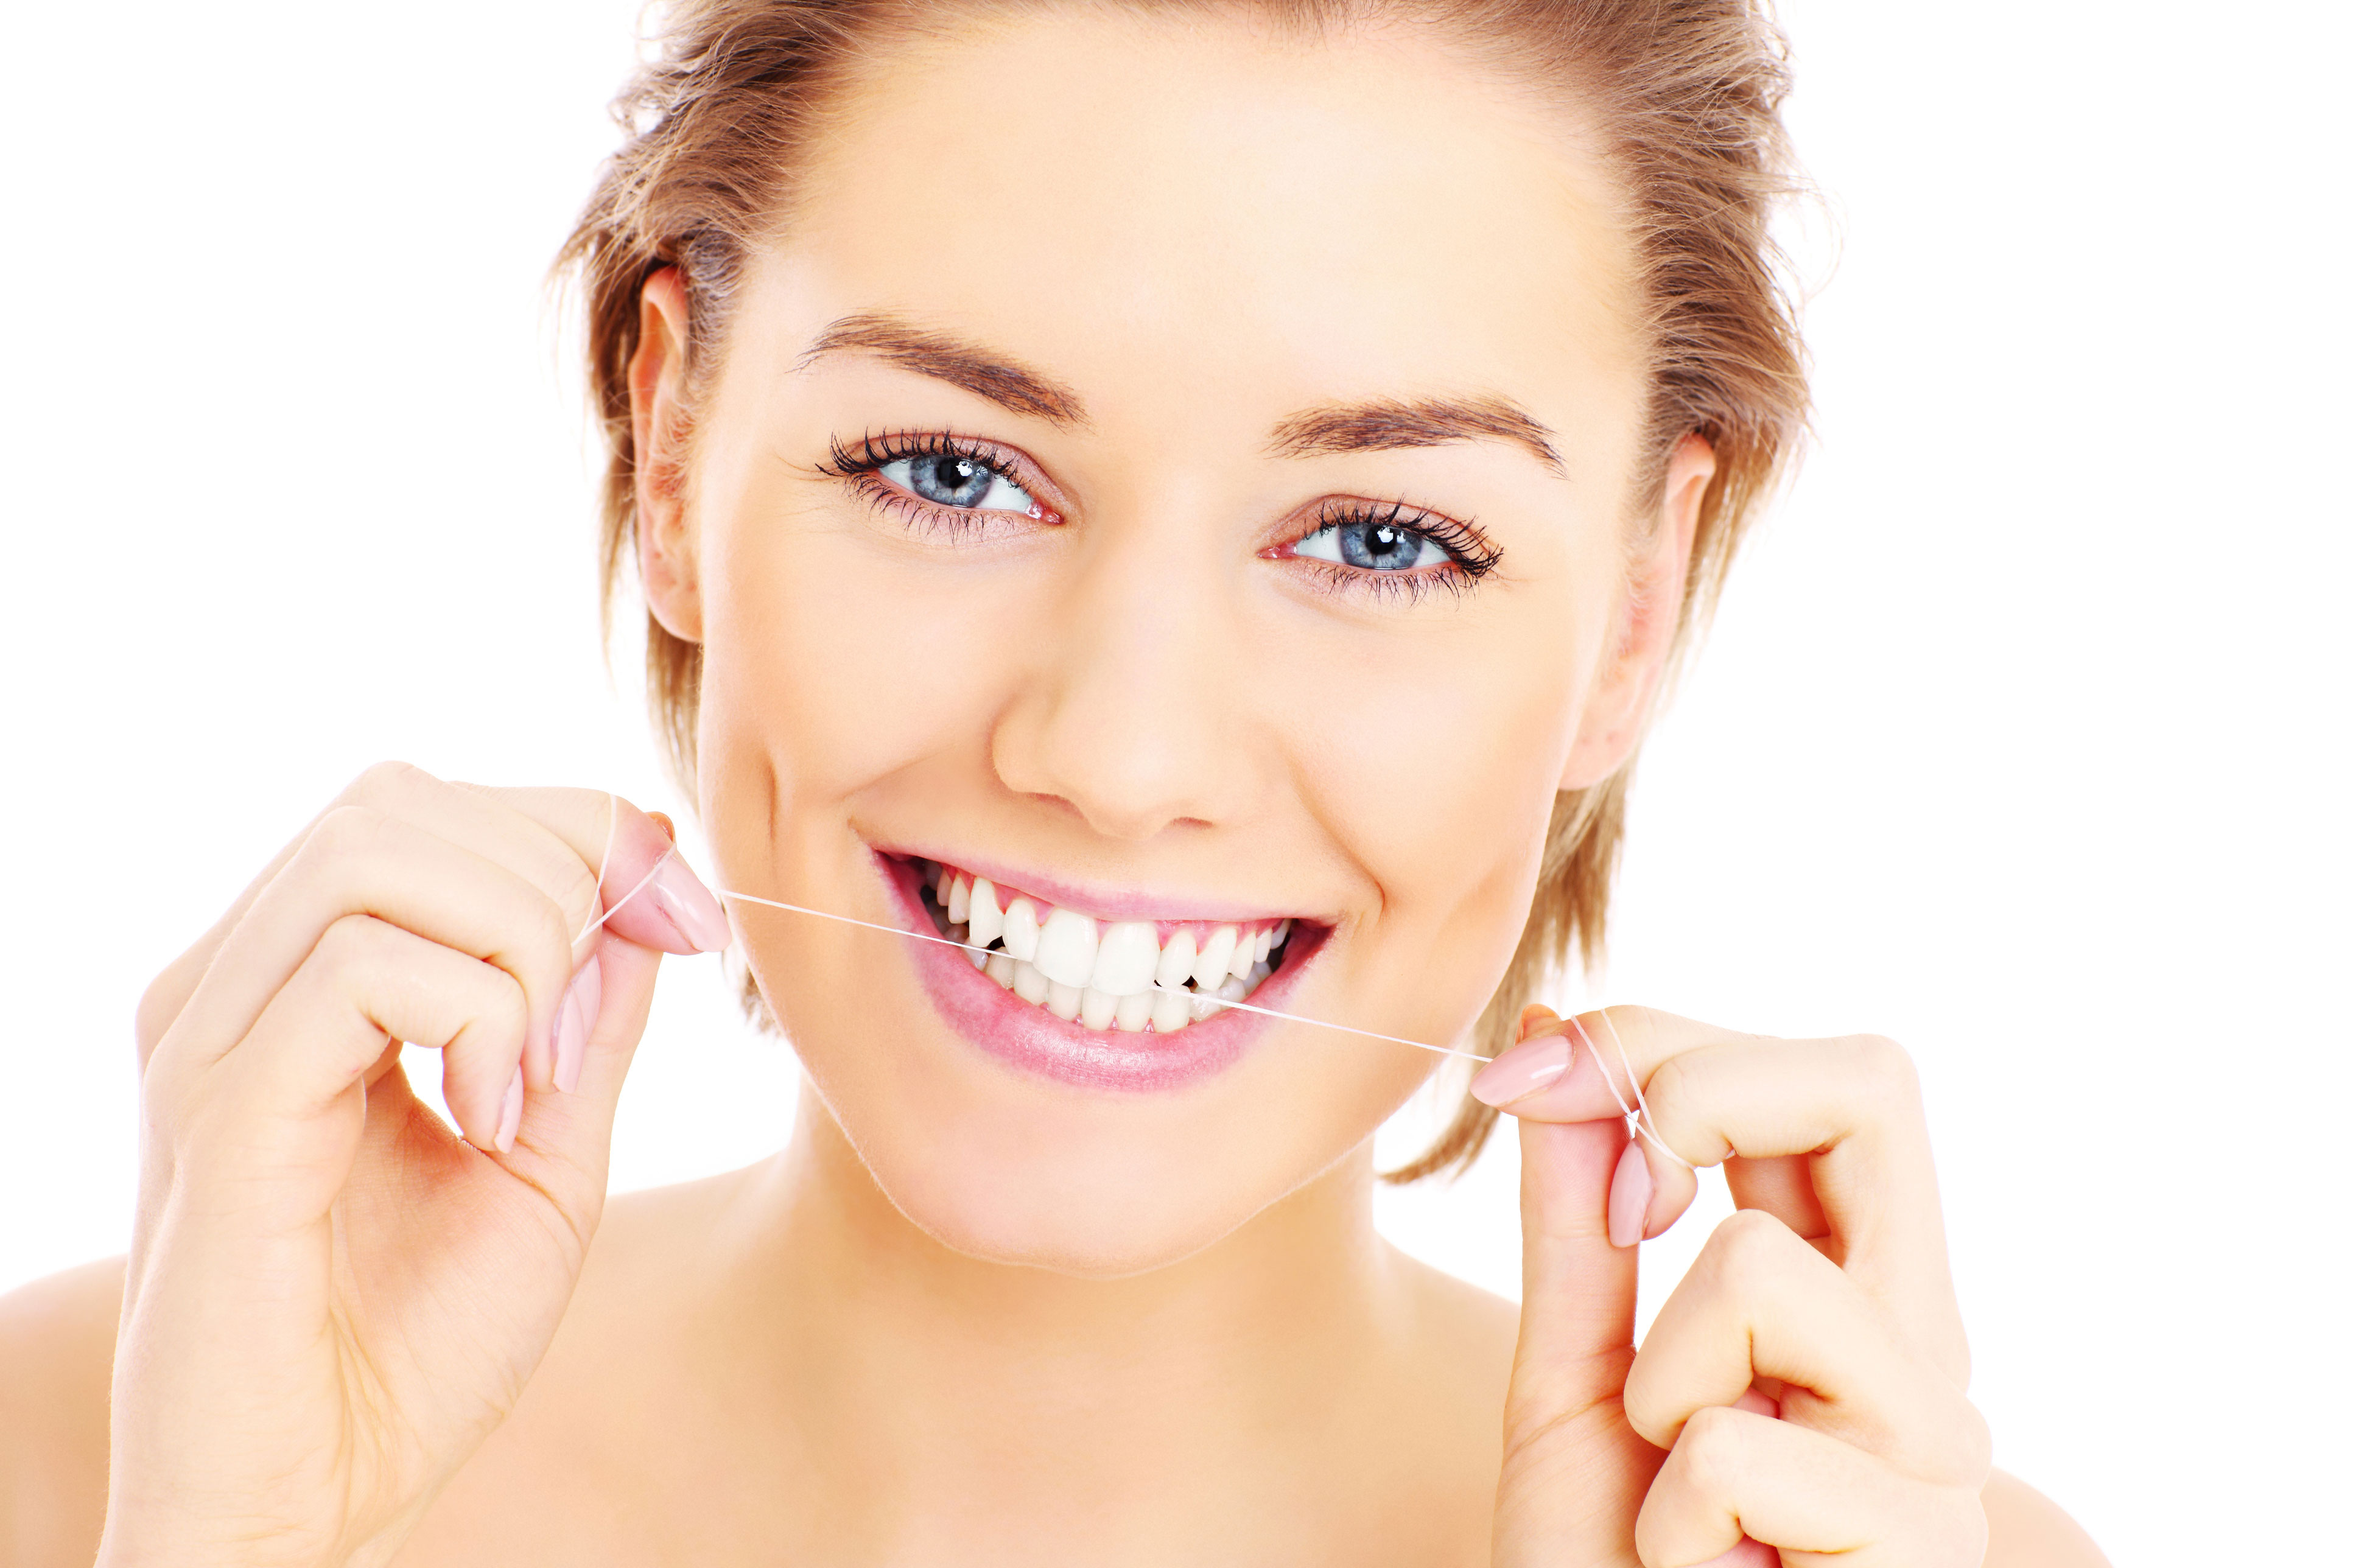 Family Dentist in Jones Valley | Only Floss The Teeth You Want To Keep